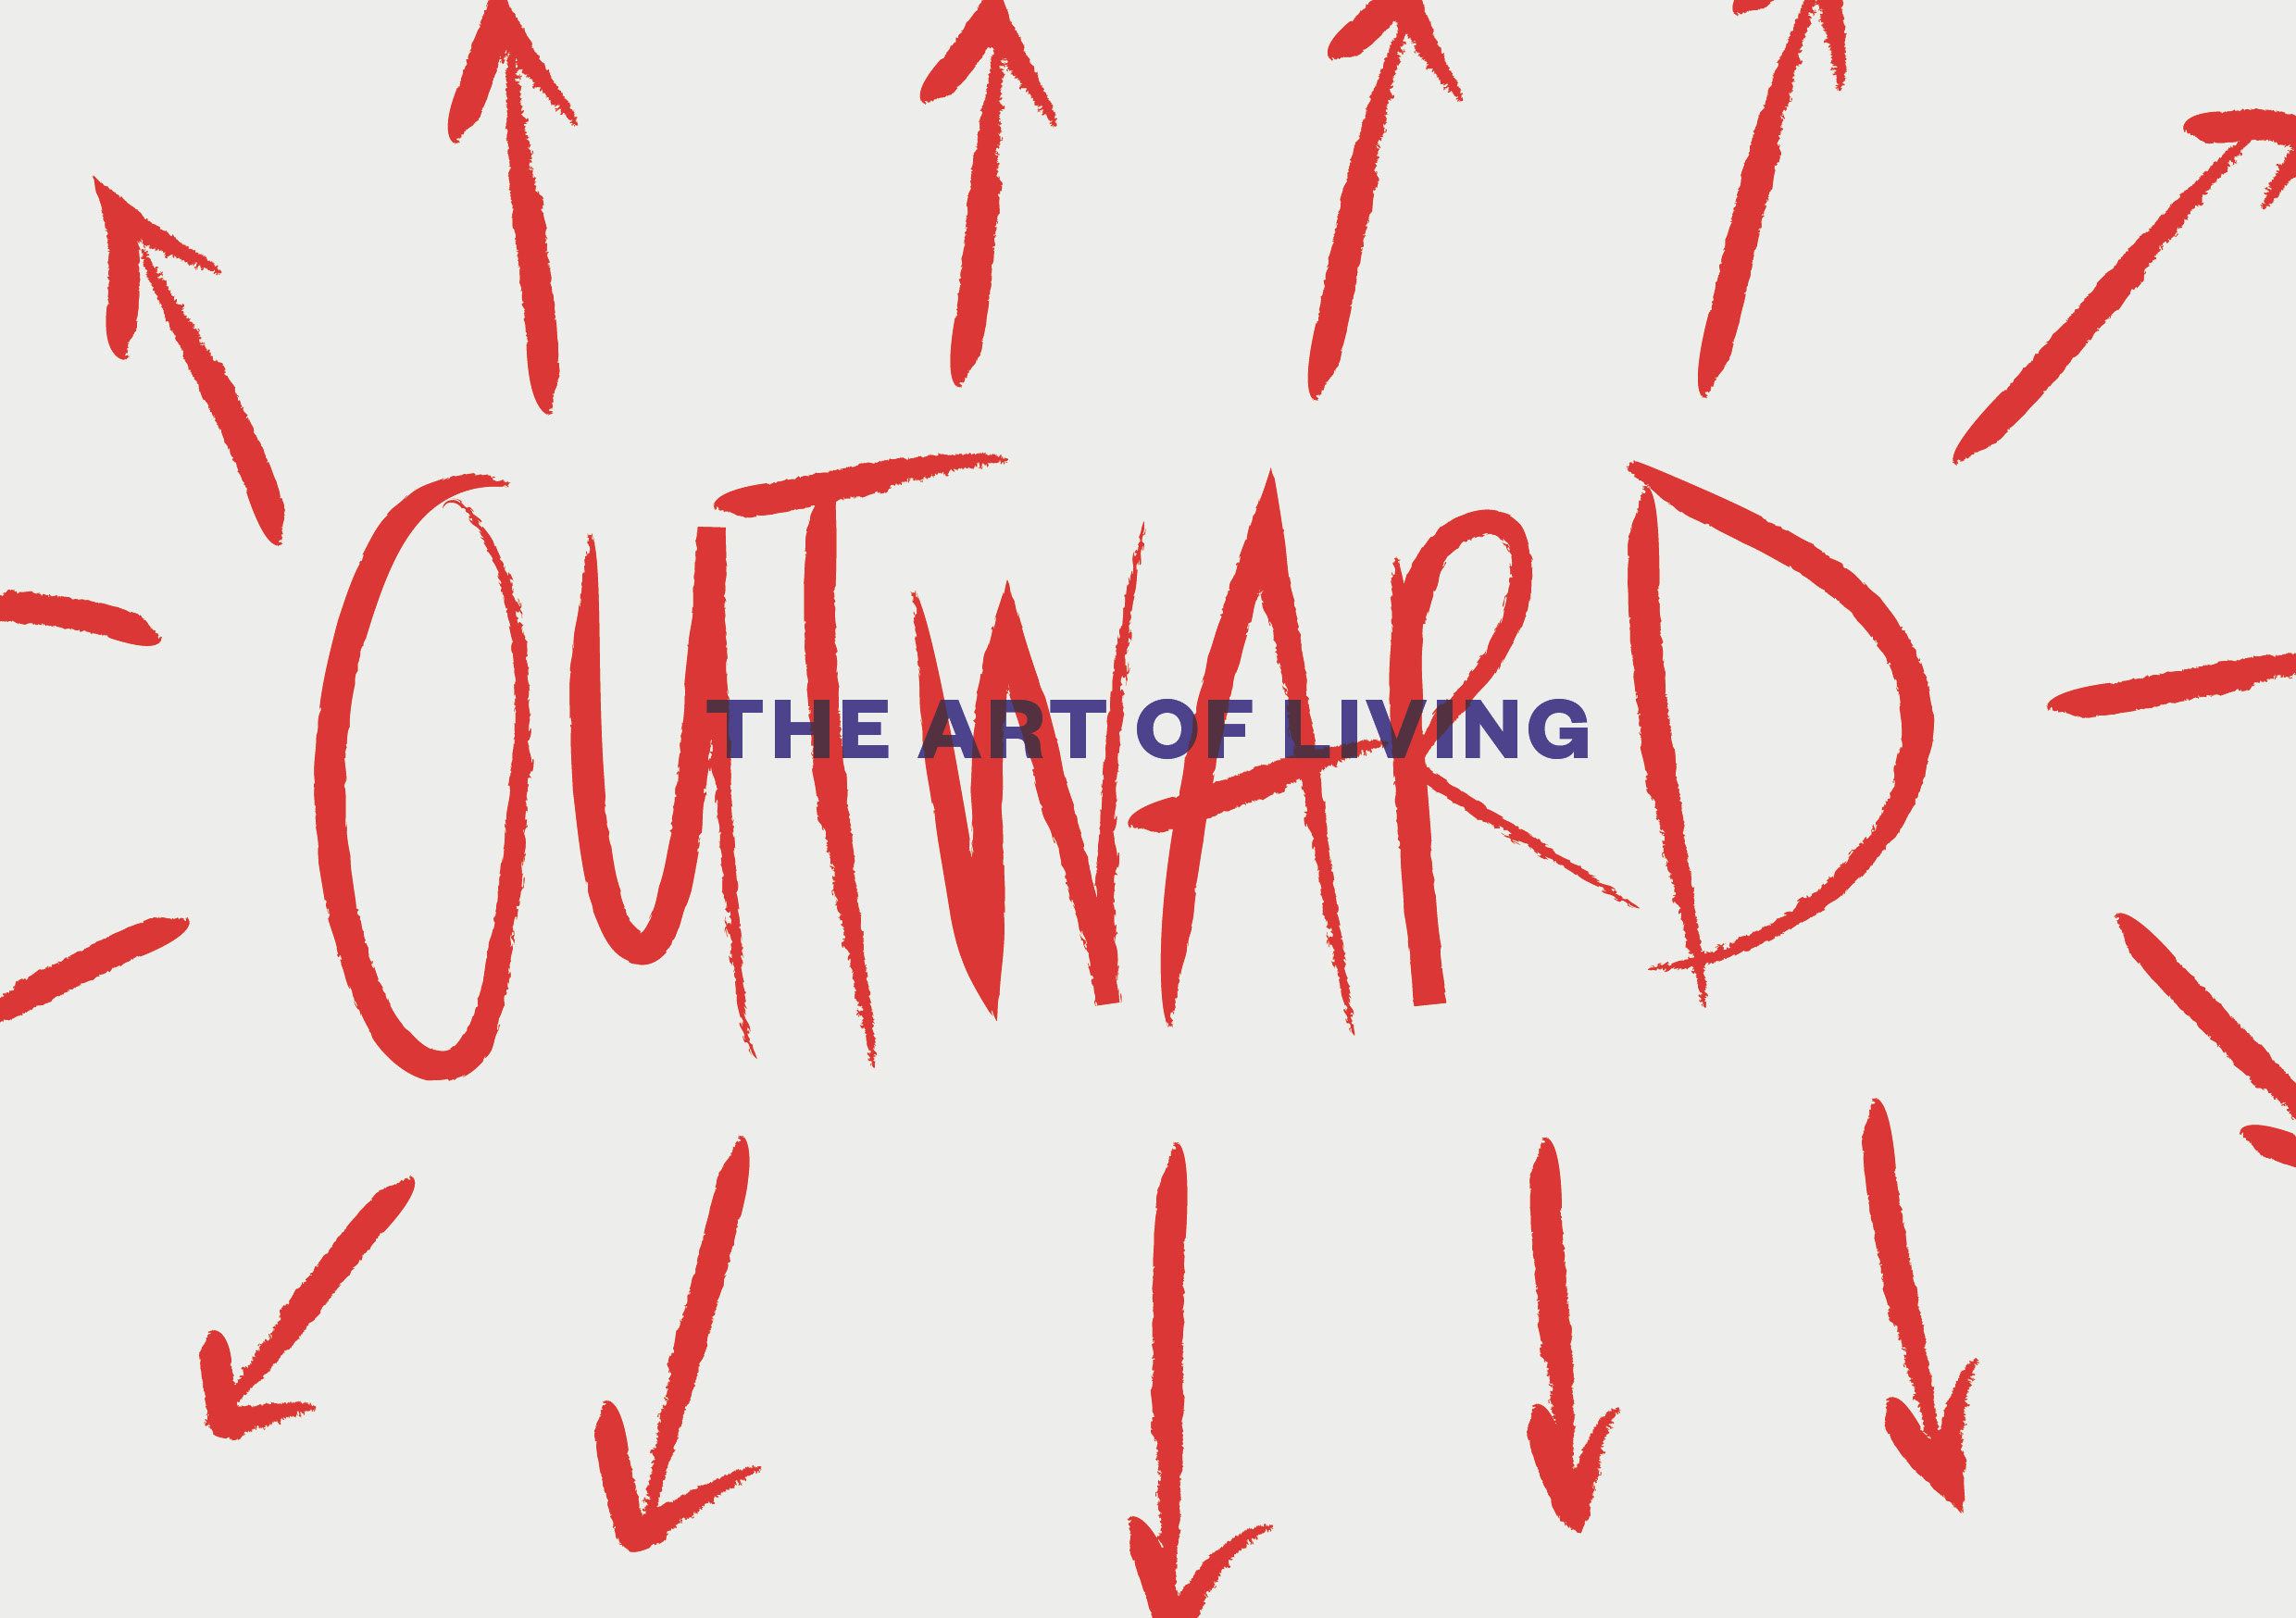 Art_of_Living_Outwards_D1.jpg